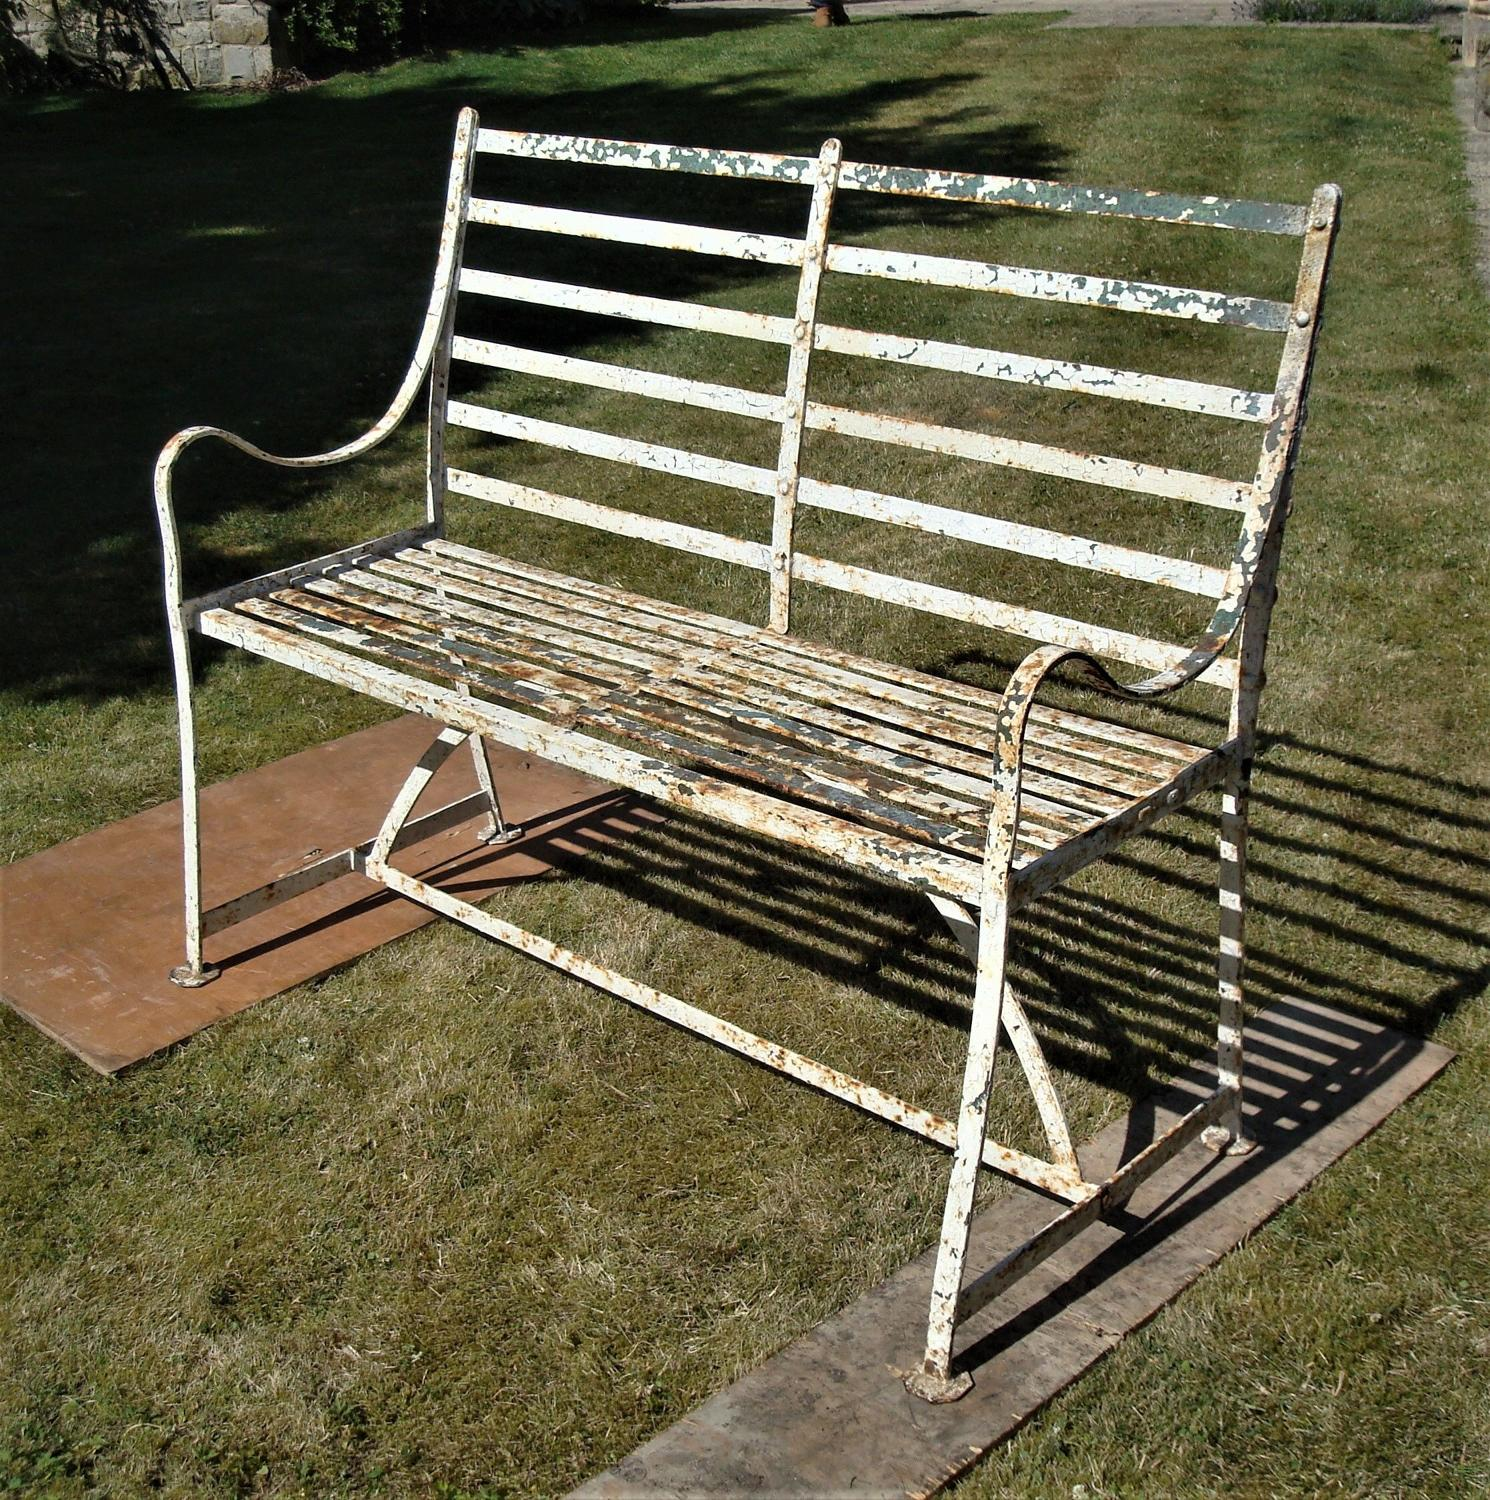 Regency wrought iron, slatted garden seat